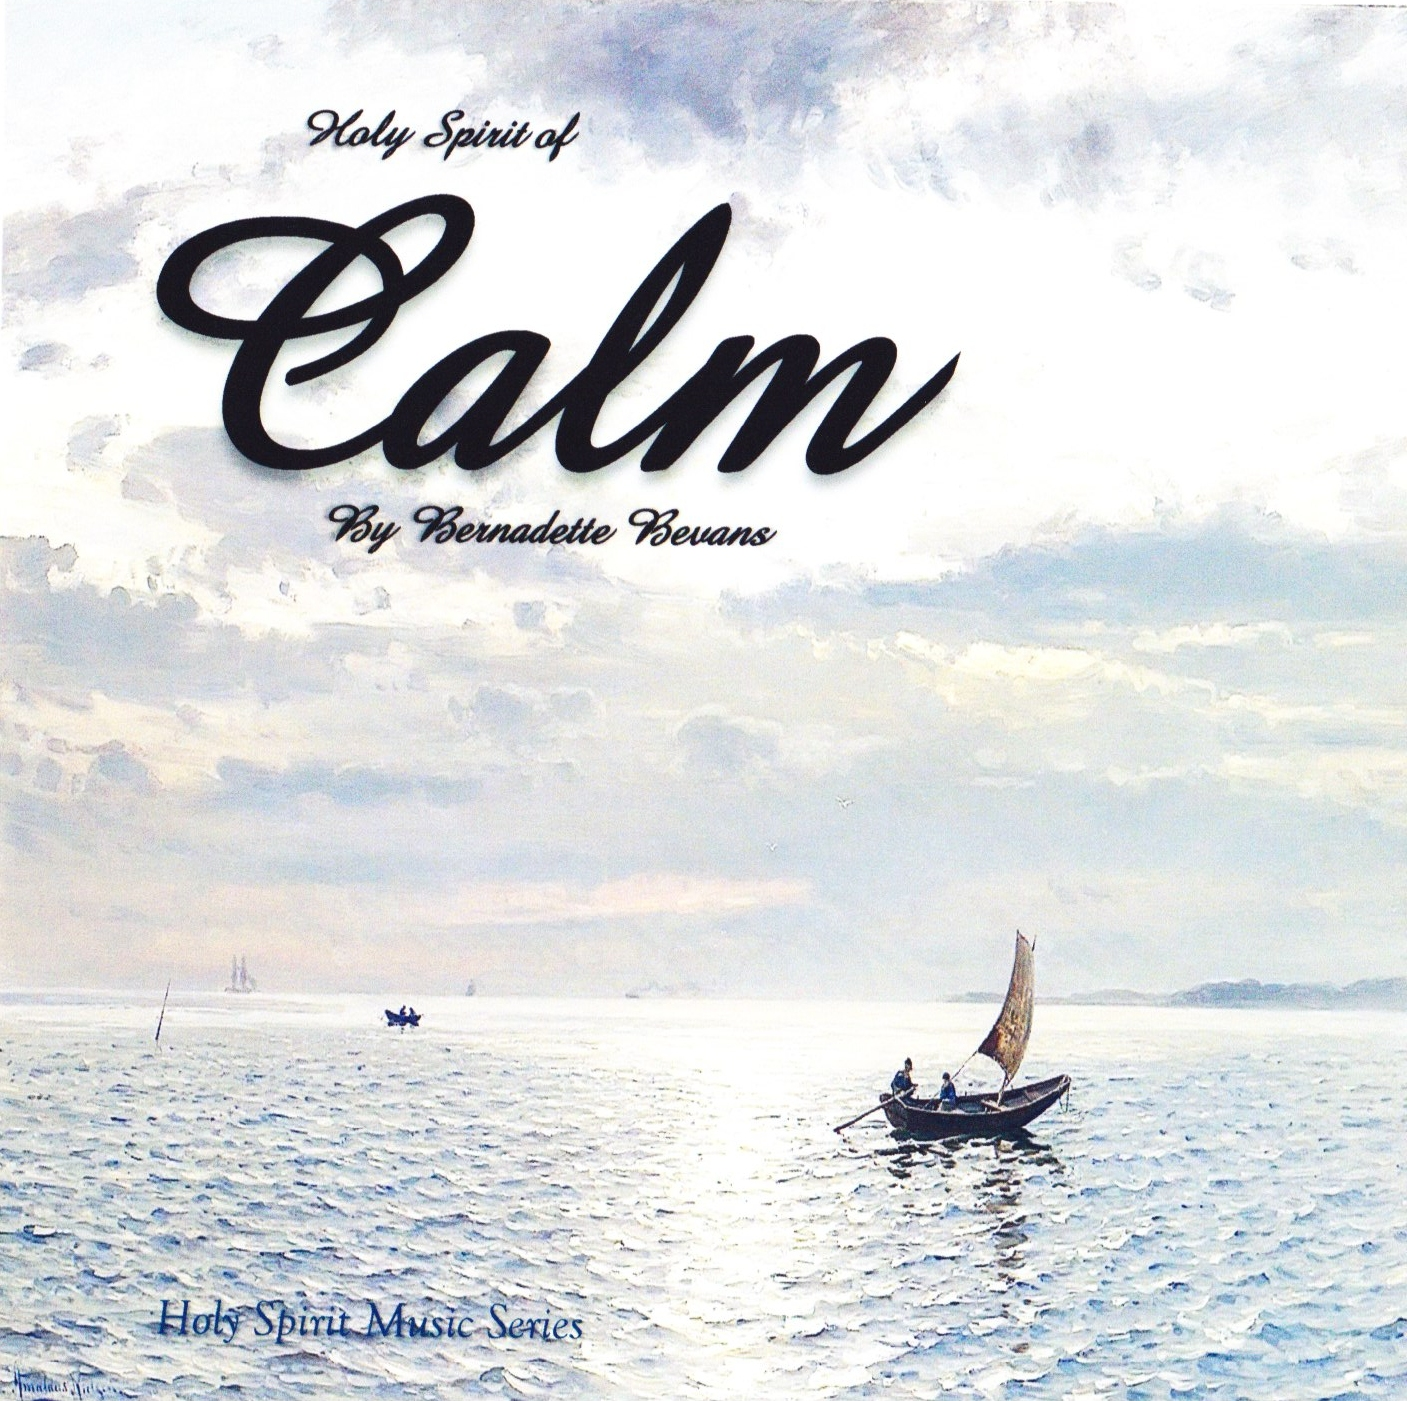 Holy Spirit of Calm CD